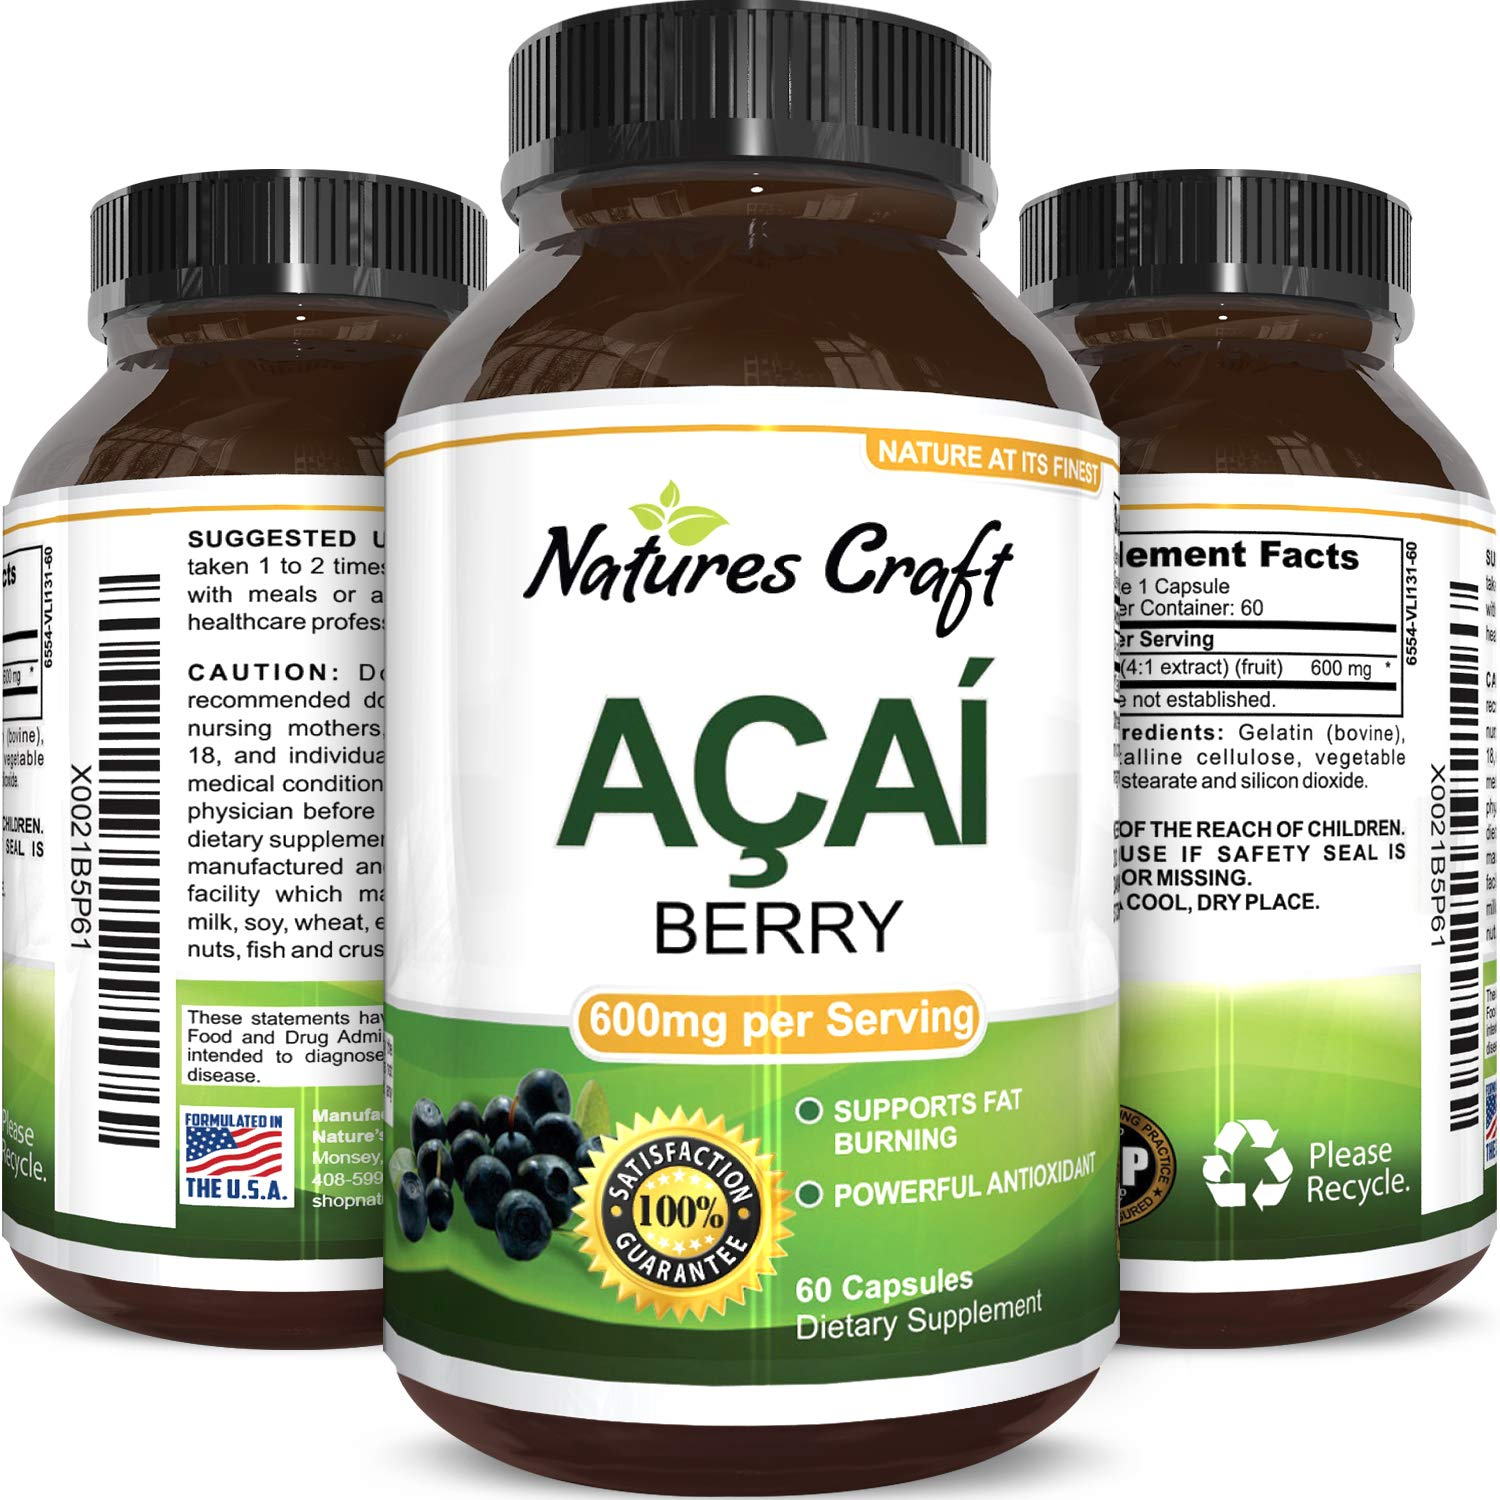 Pure Acai Berry Concentrate Capsules Acai Berry Cleanse Weight Loss Antioxidant Support Energy Immune System Booster – Health and Wellness Dietary Supplement For Women and Men